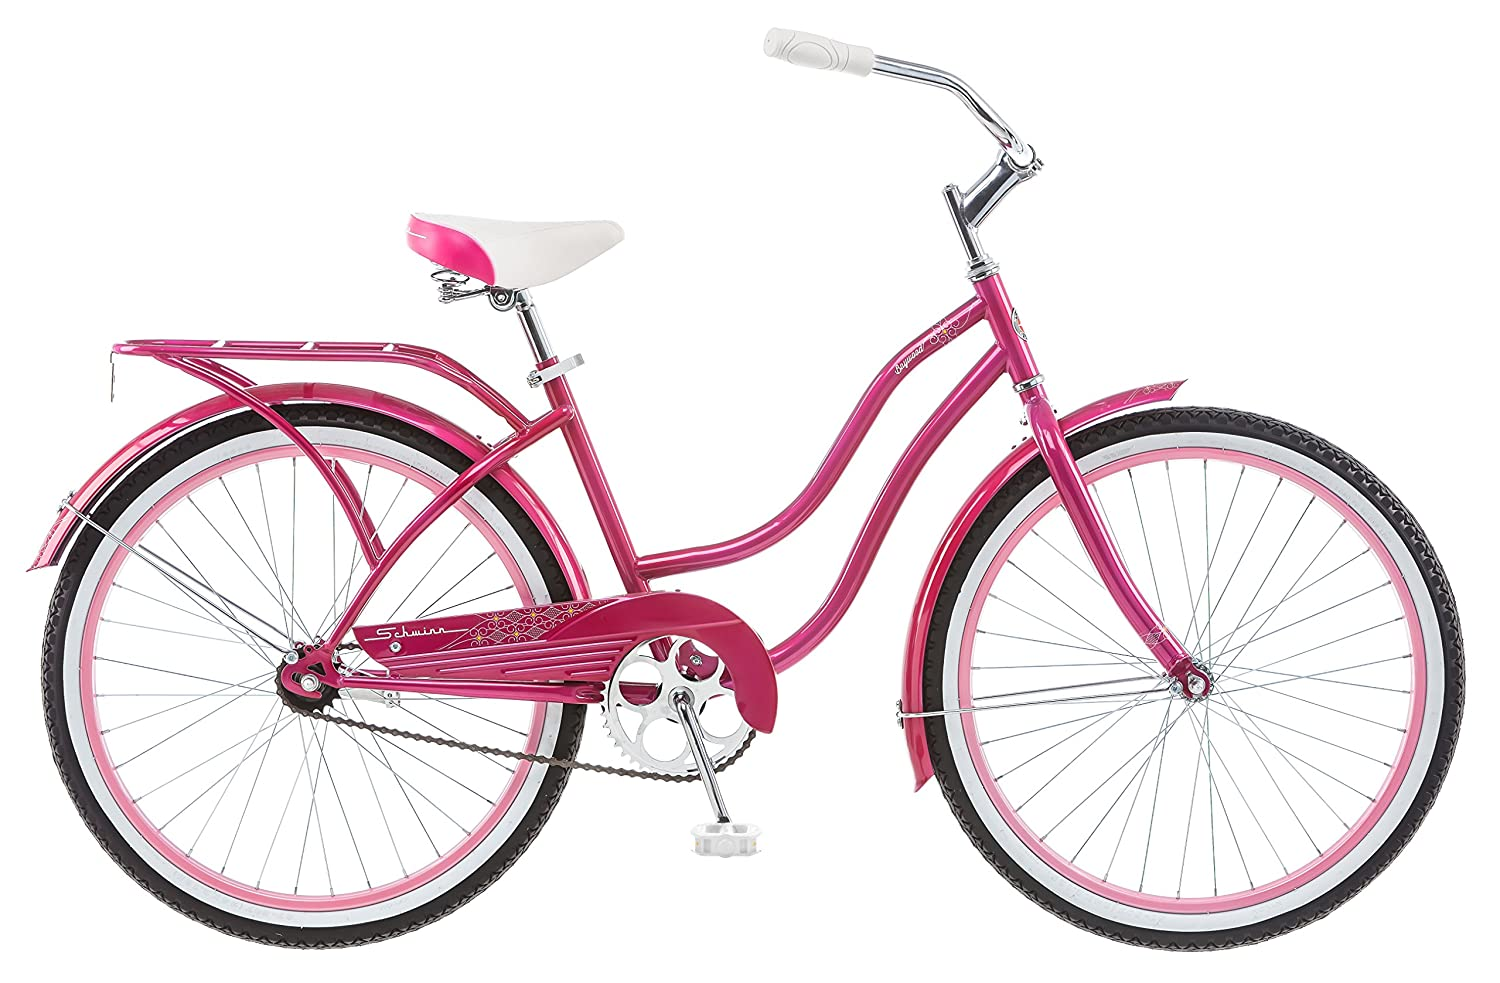 Schwinn Girl's Cruiser Bike, 24-Inch, Pink